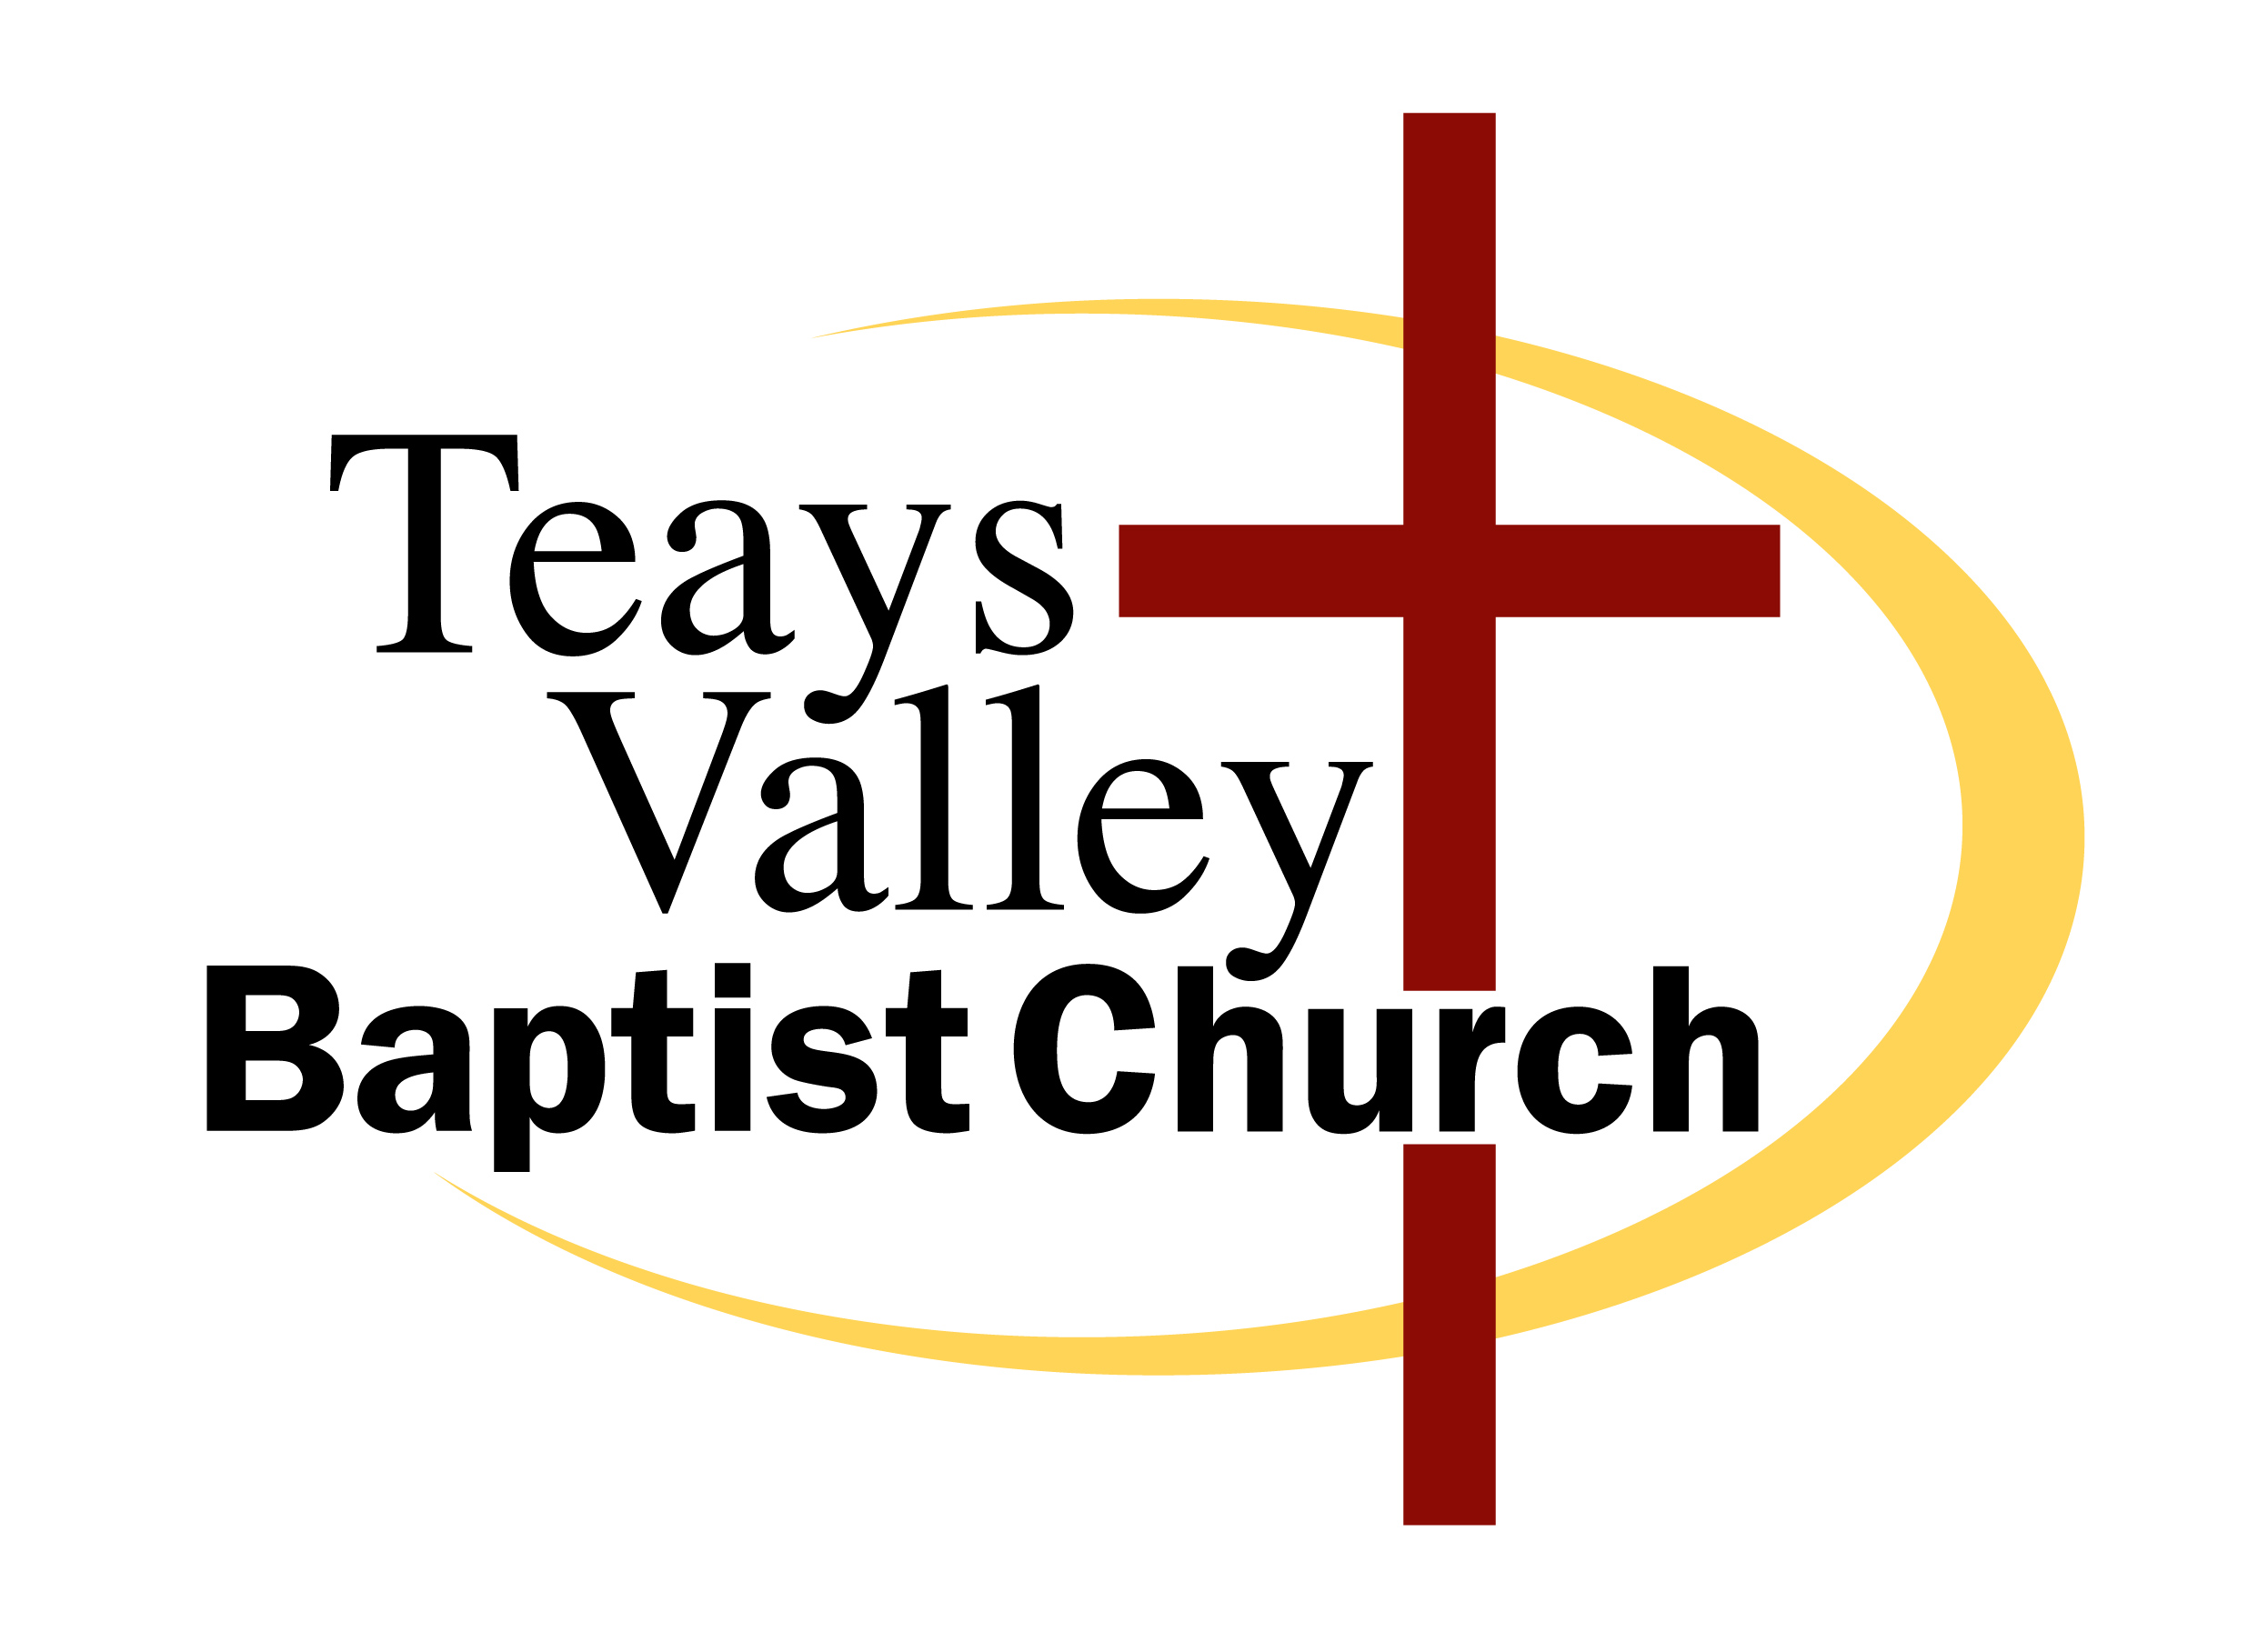 Teays Valley Baptist Church logo |